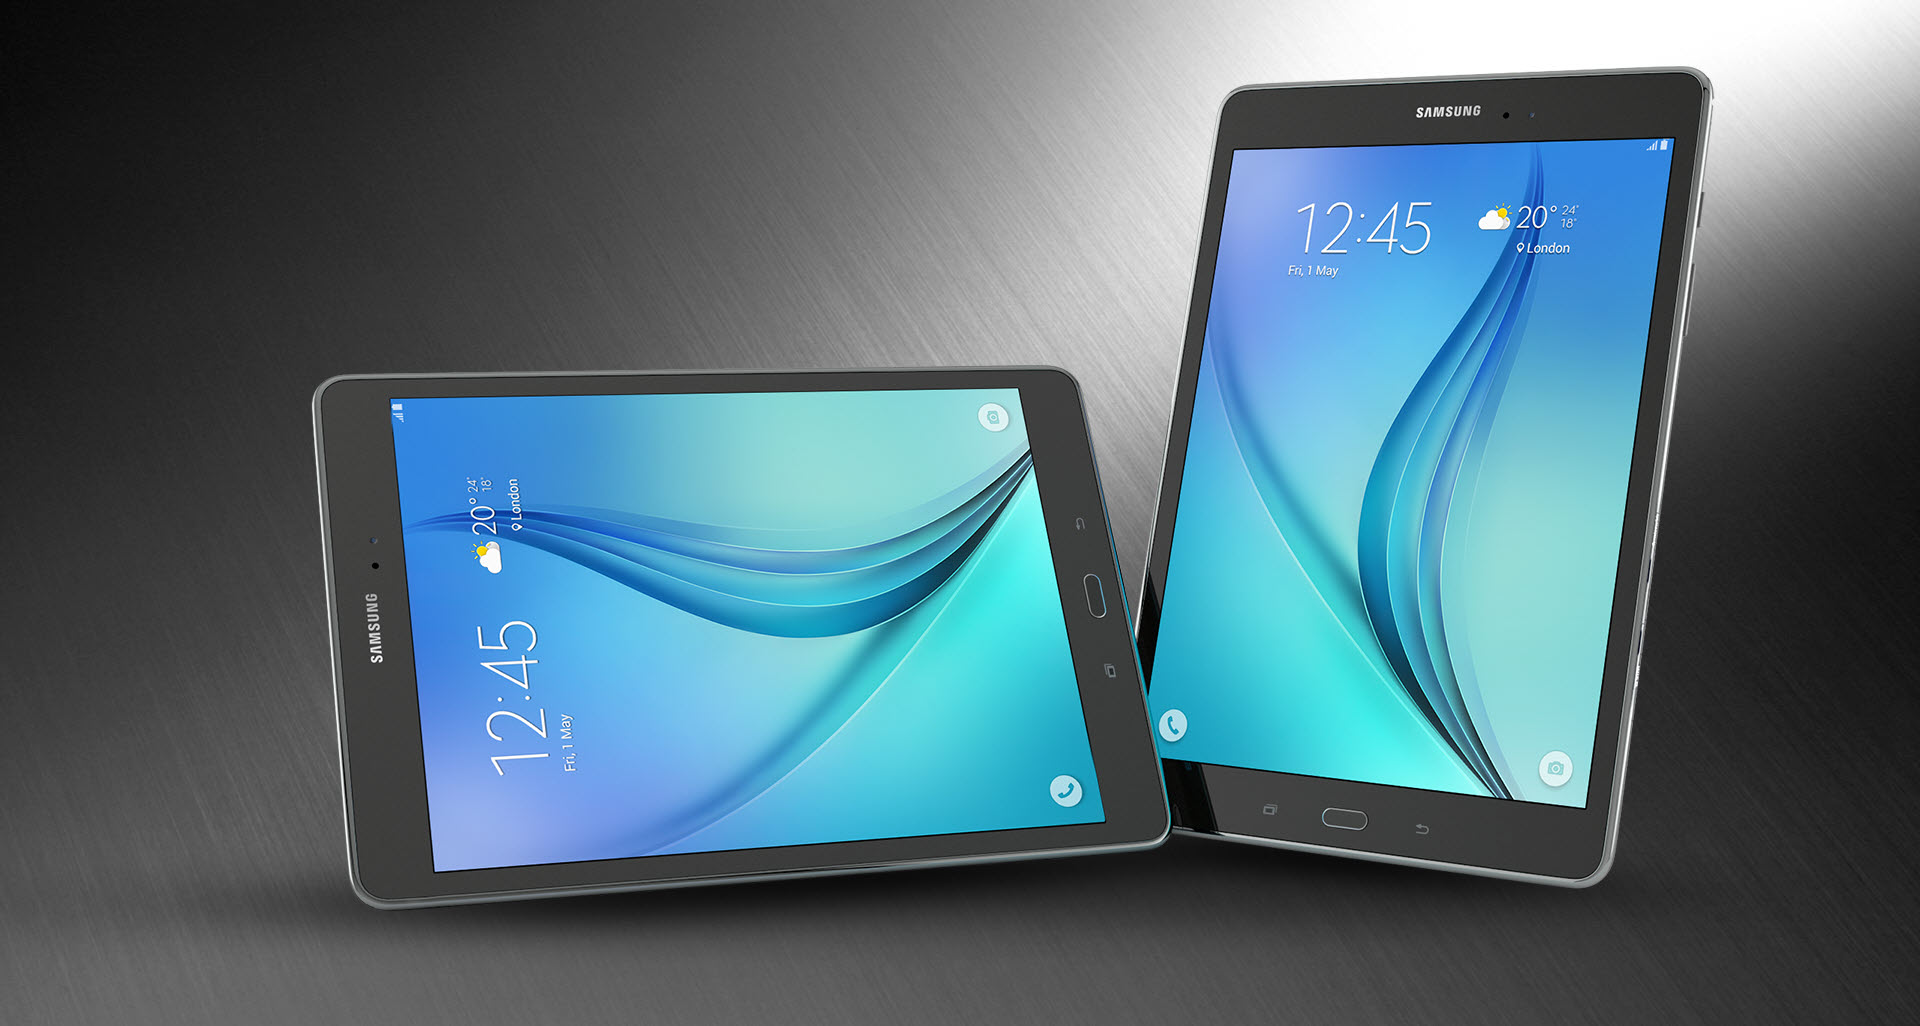 Galaxy Tab A 9.7 with Android 7.0 Nougat inside